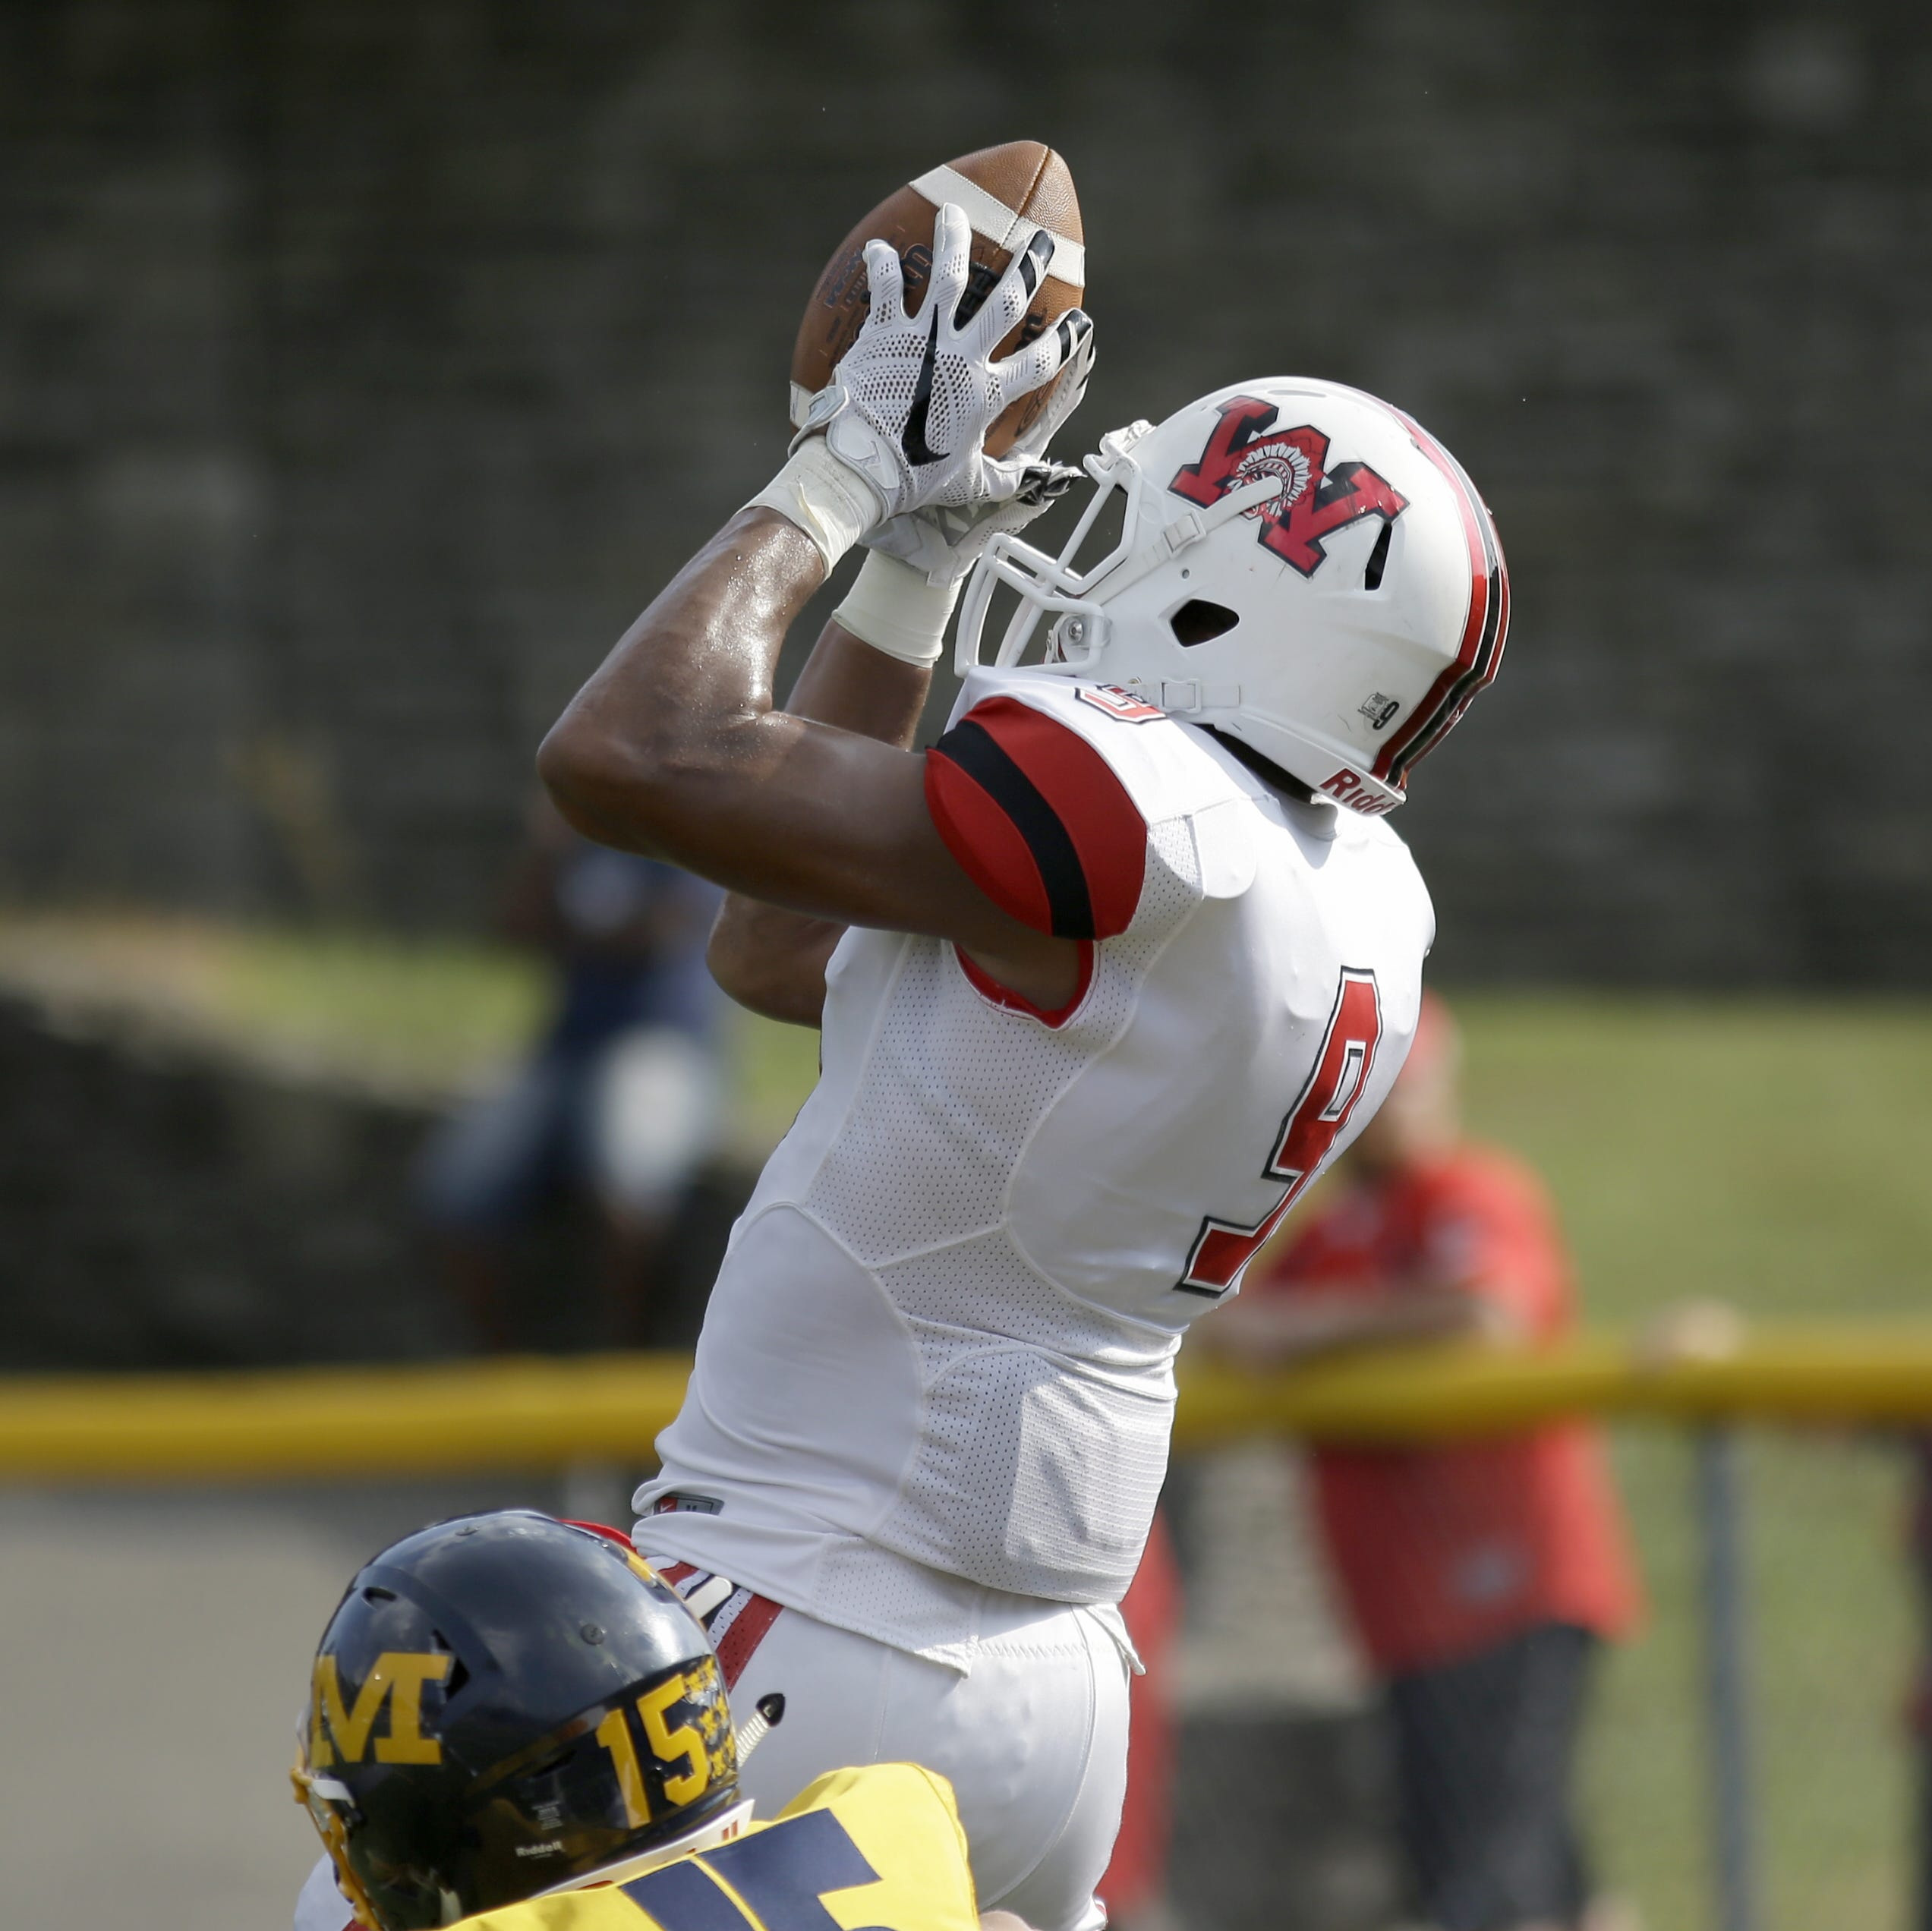 Blue Smith of Wayne High School transfers from Ohio State to UC football